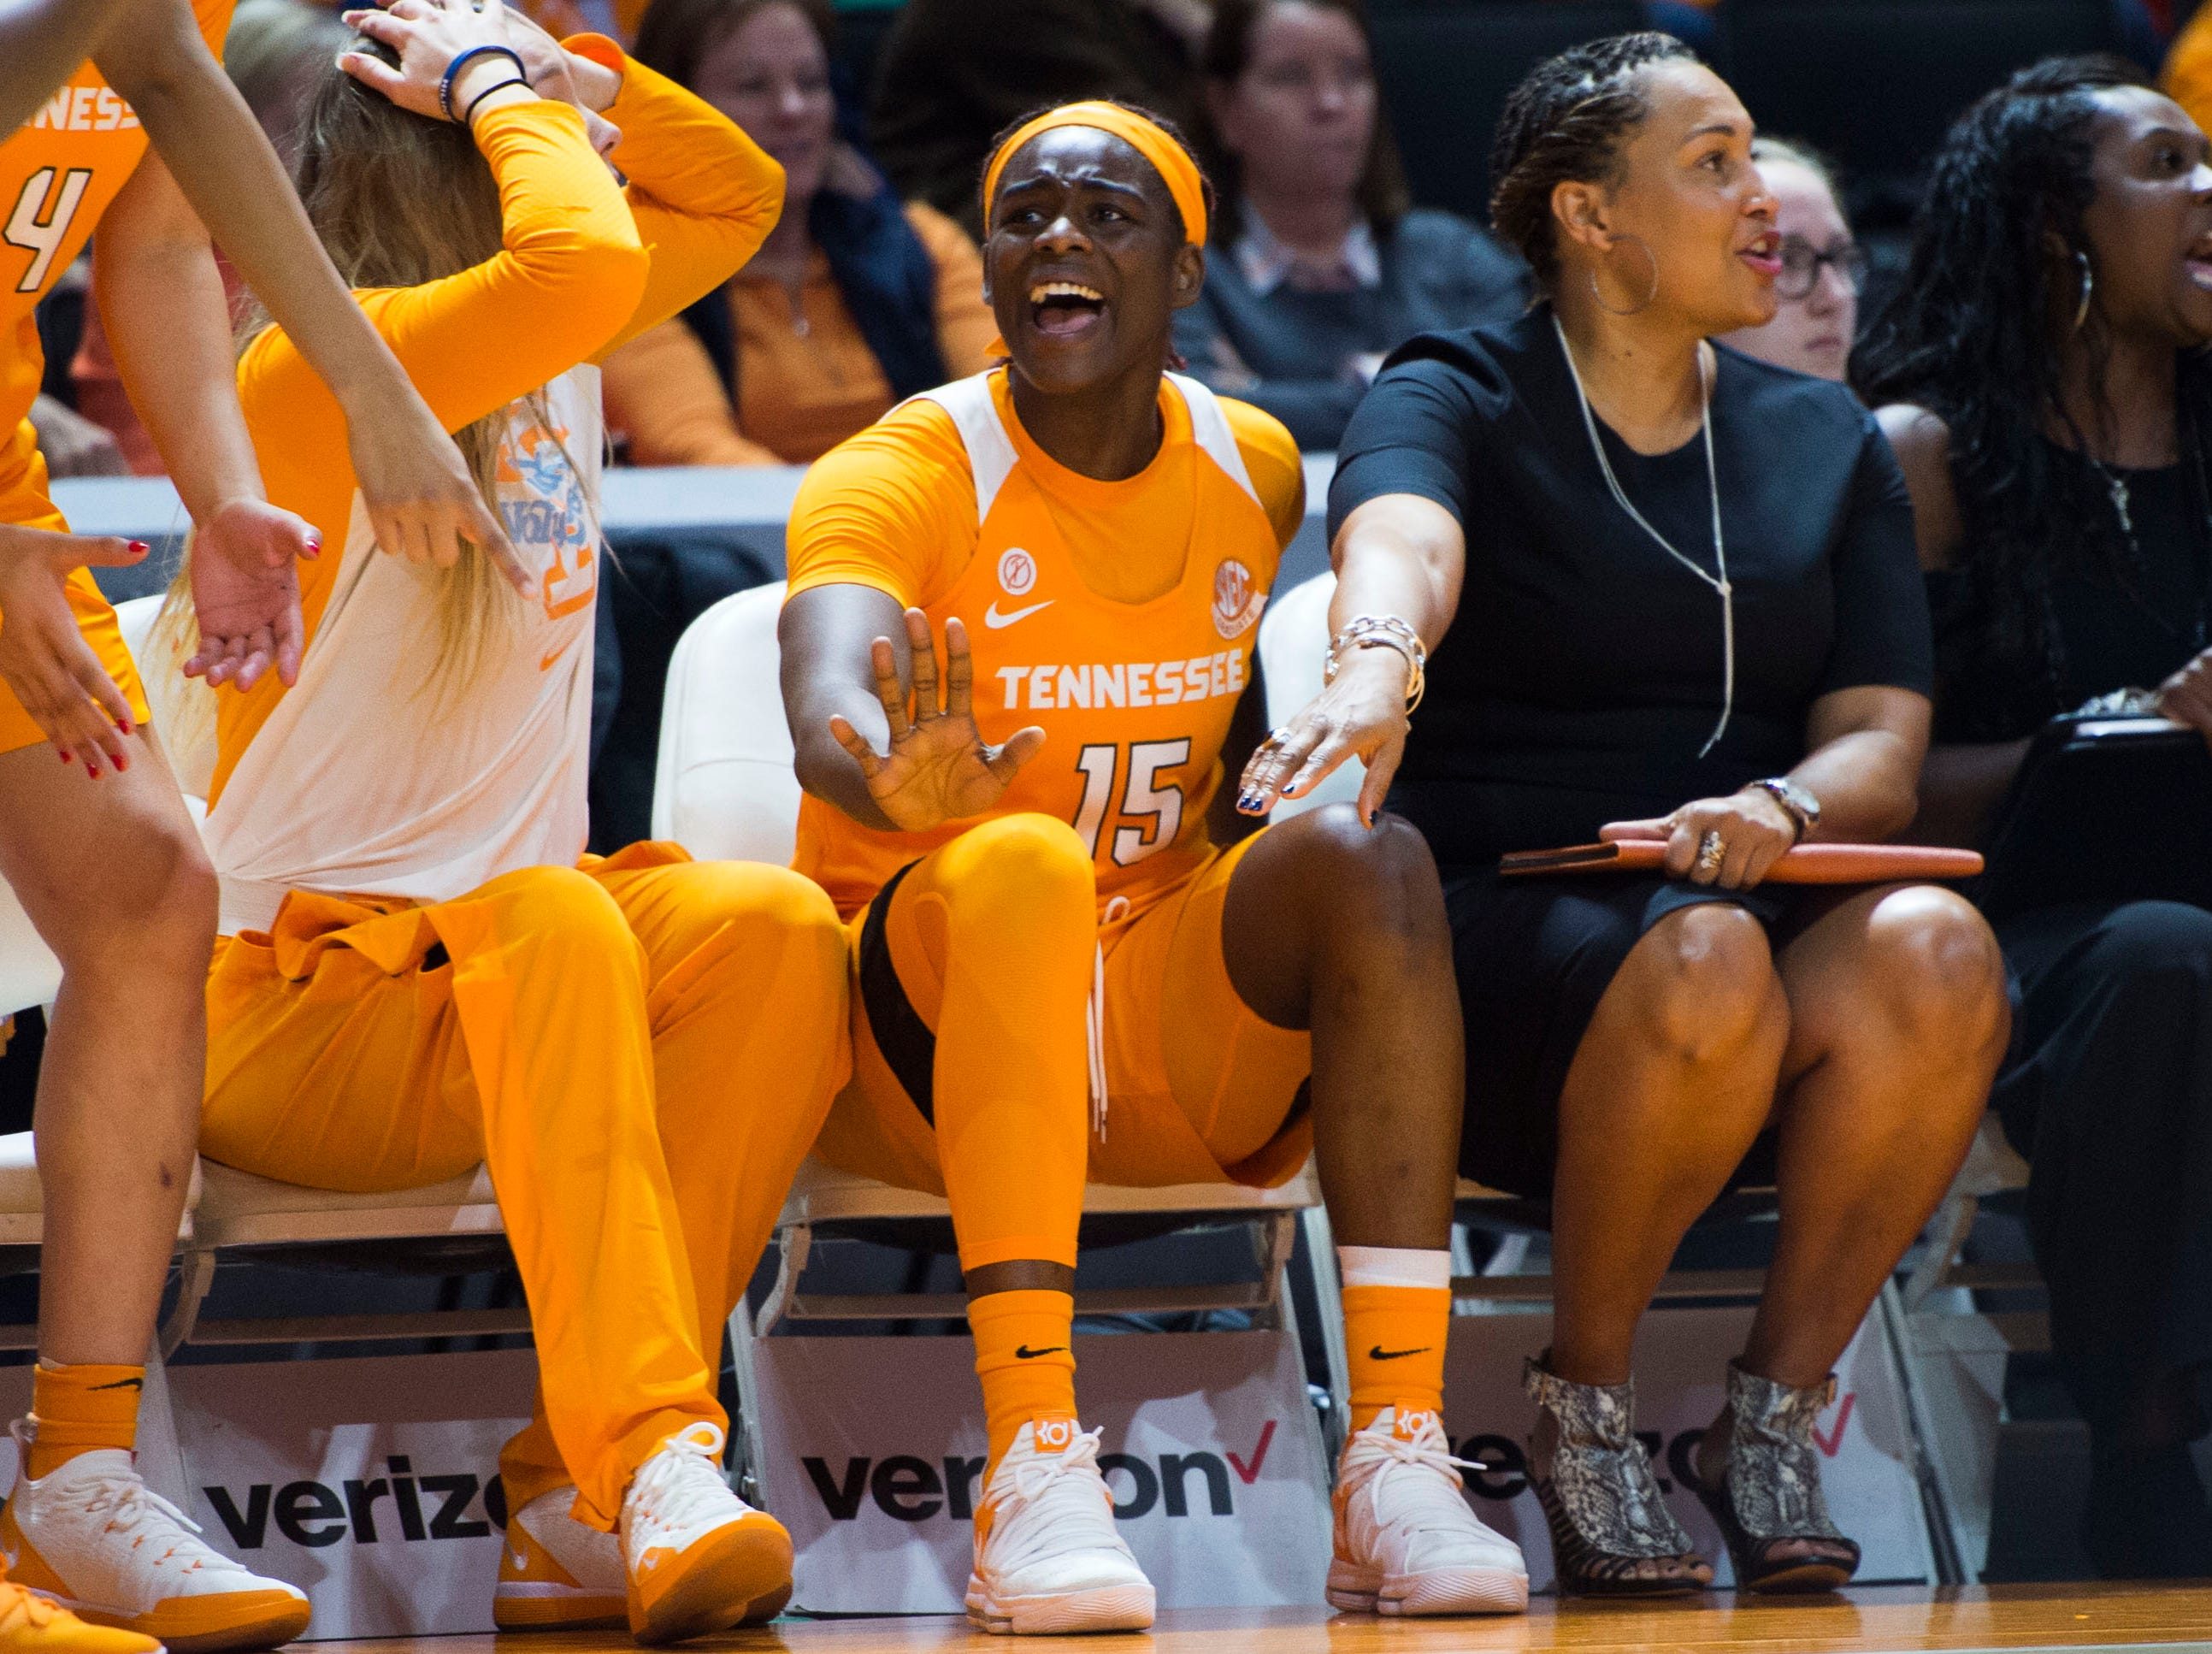 Tennessee's Cheridene Green (15) reacts to a call during a women's basketball game between Tennessee and Stanford at Thompson-Boling Arena Tuesday, Dec. 18, 2018.